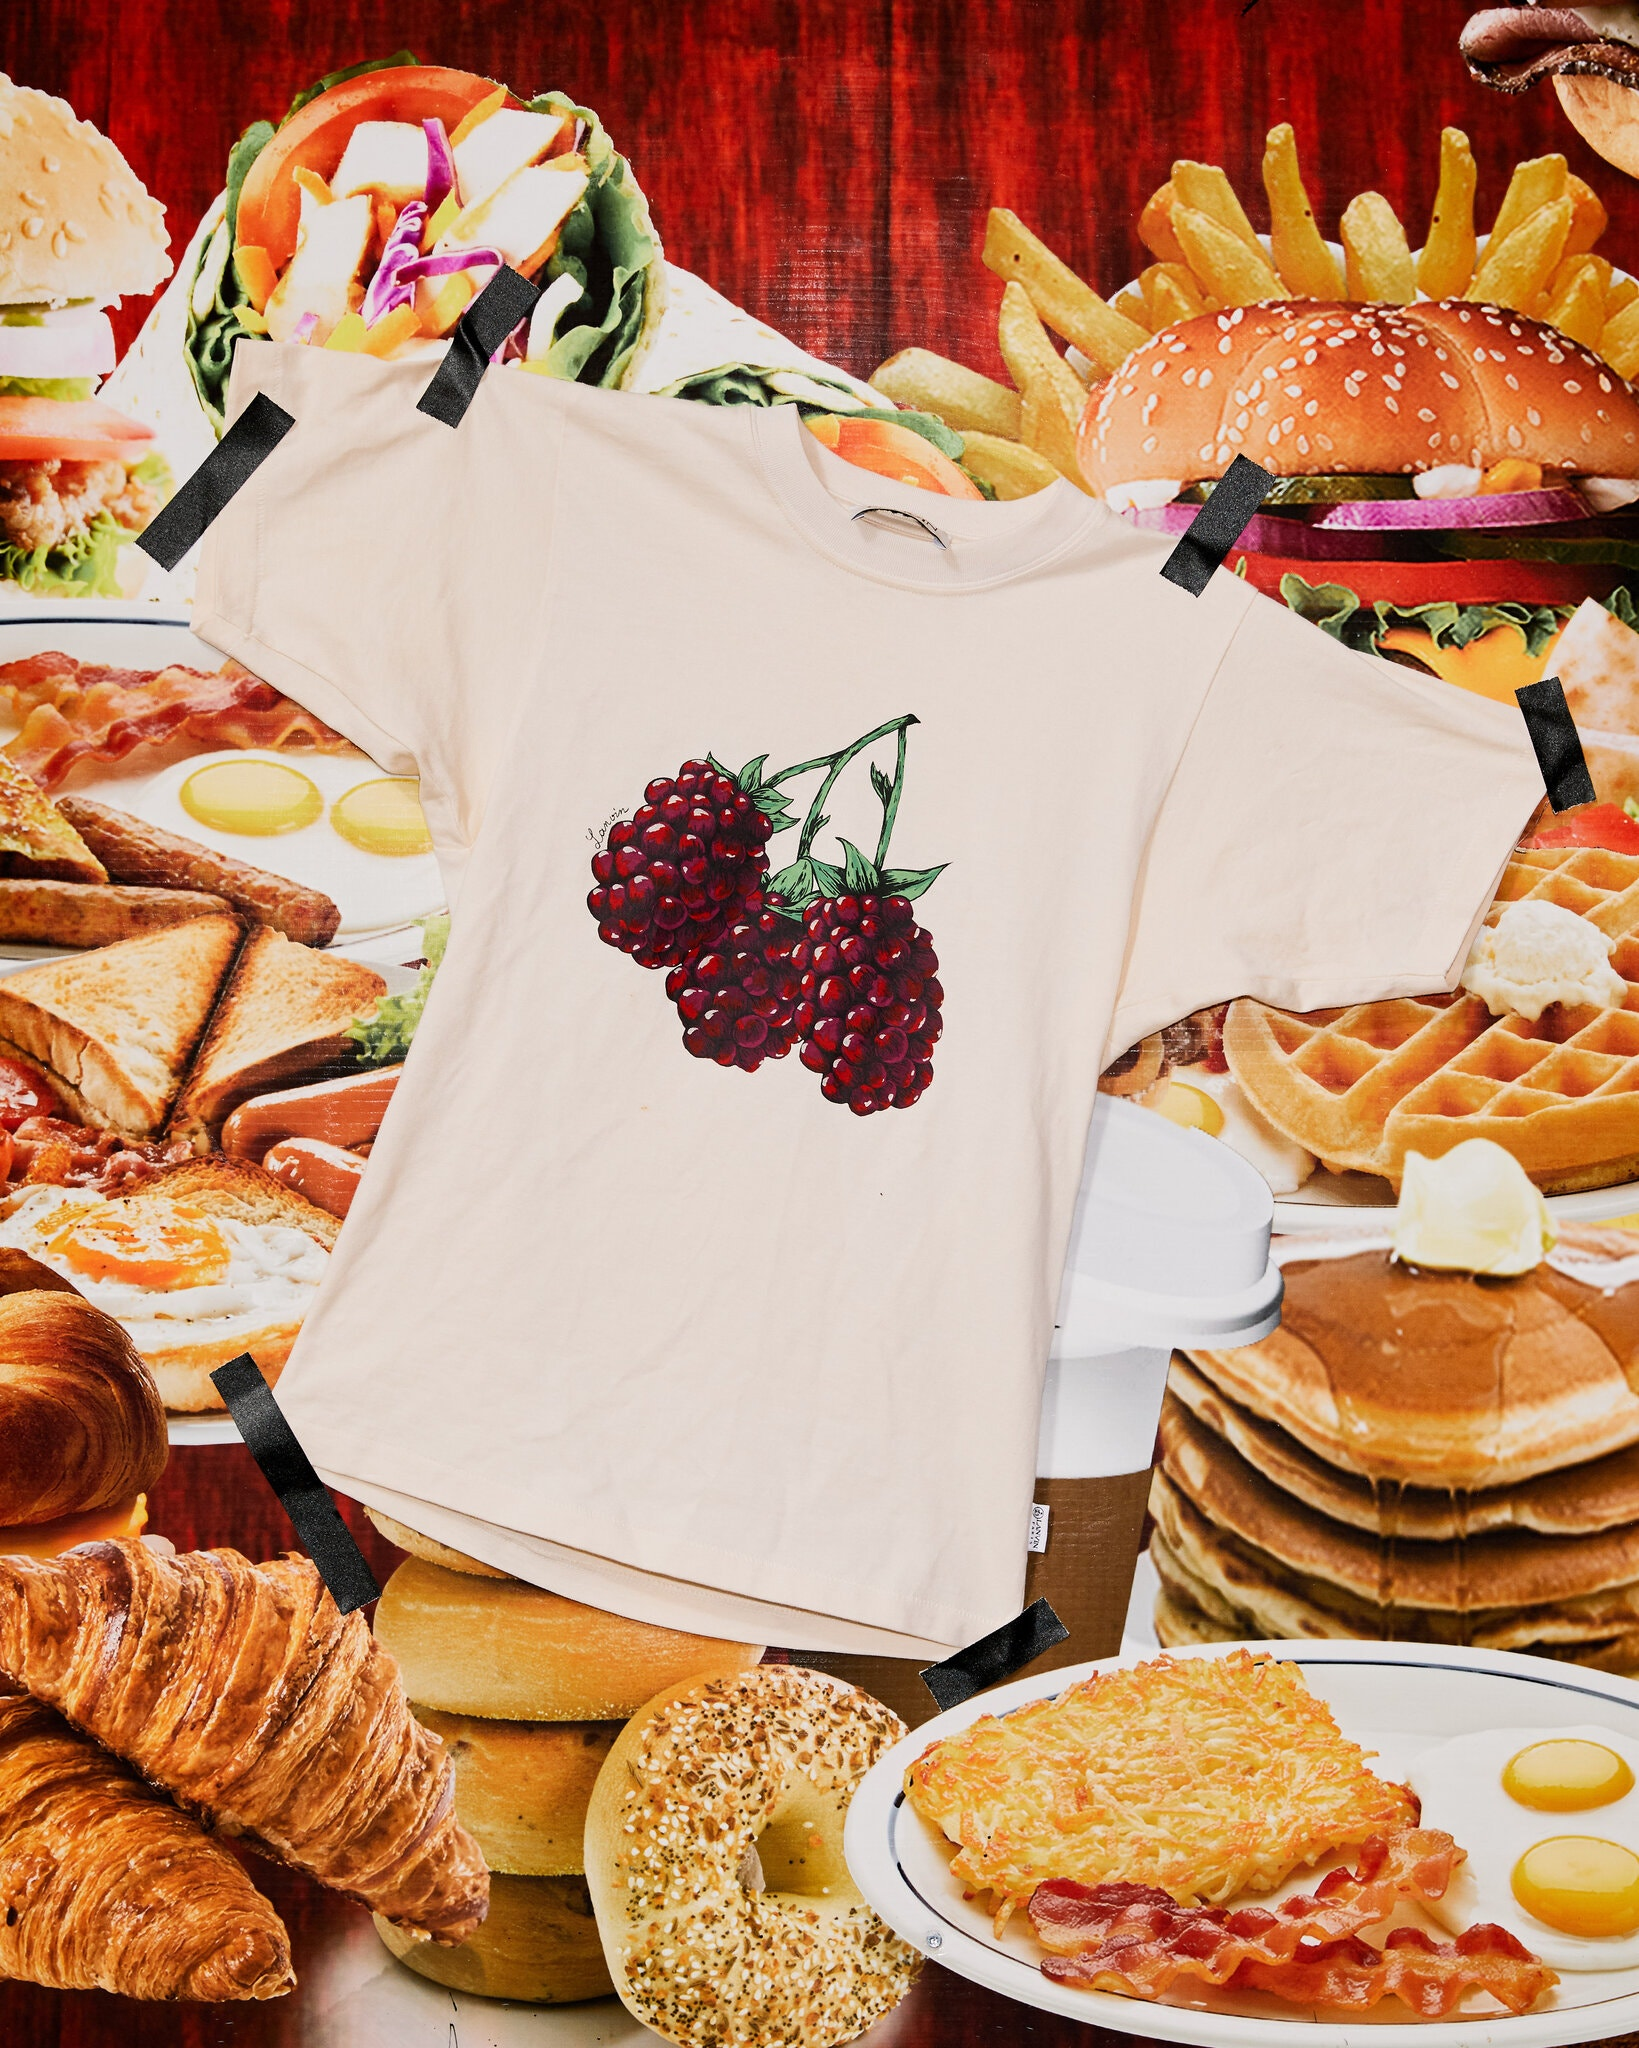 What in the World Is a $590 Scratch-and-Sniff T-shirt Doing in 2020?  The New York Times